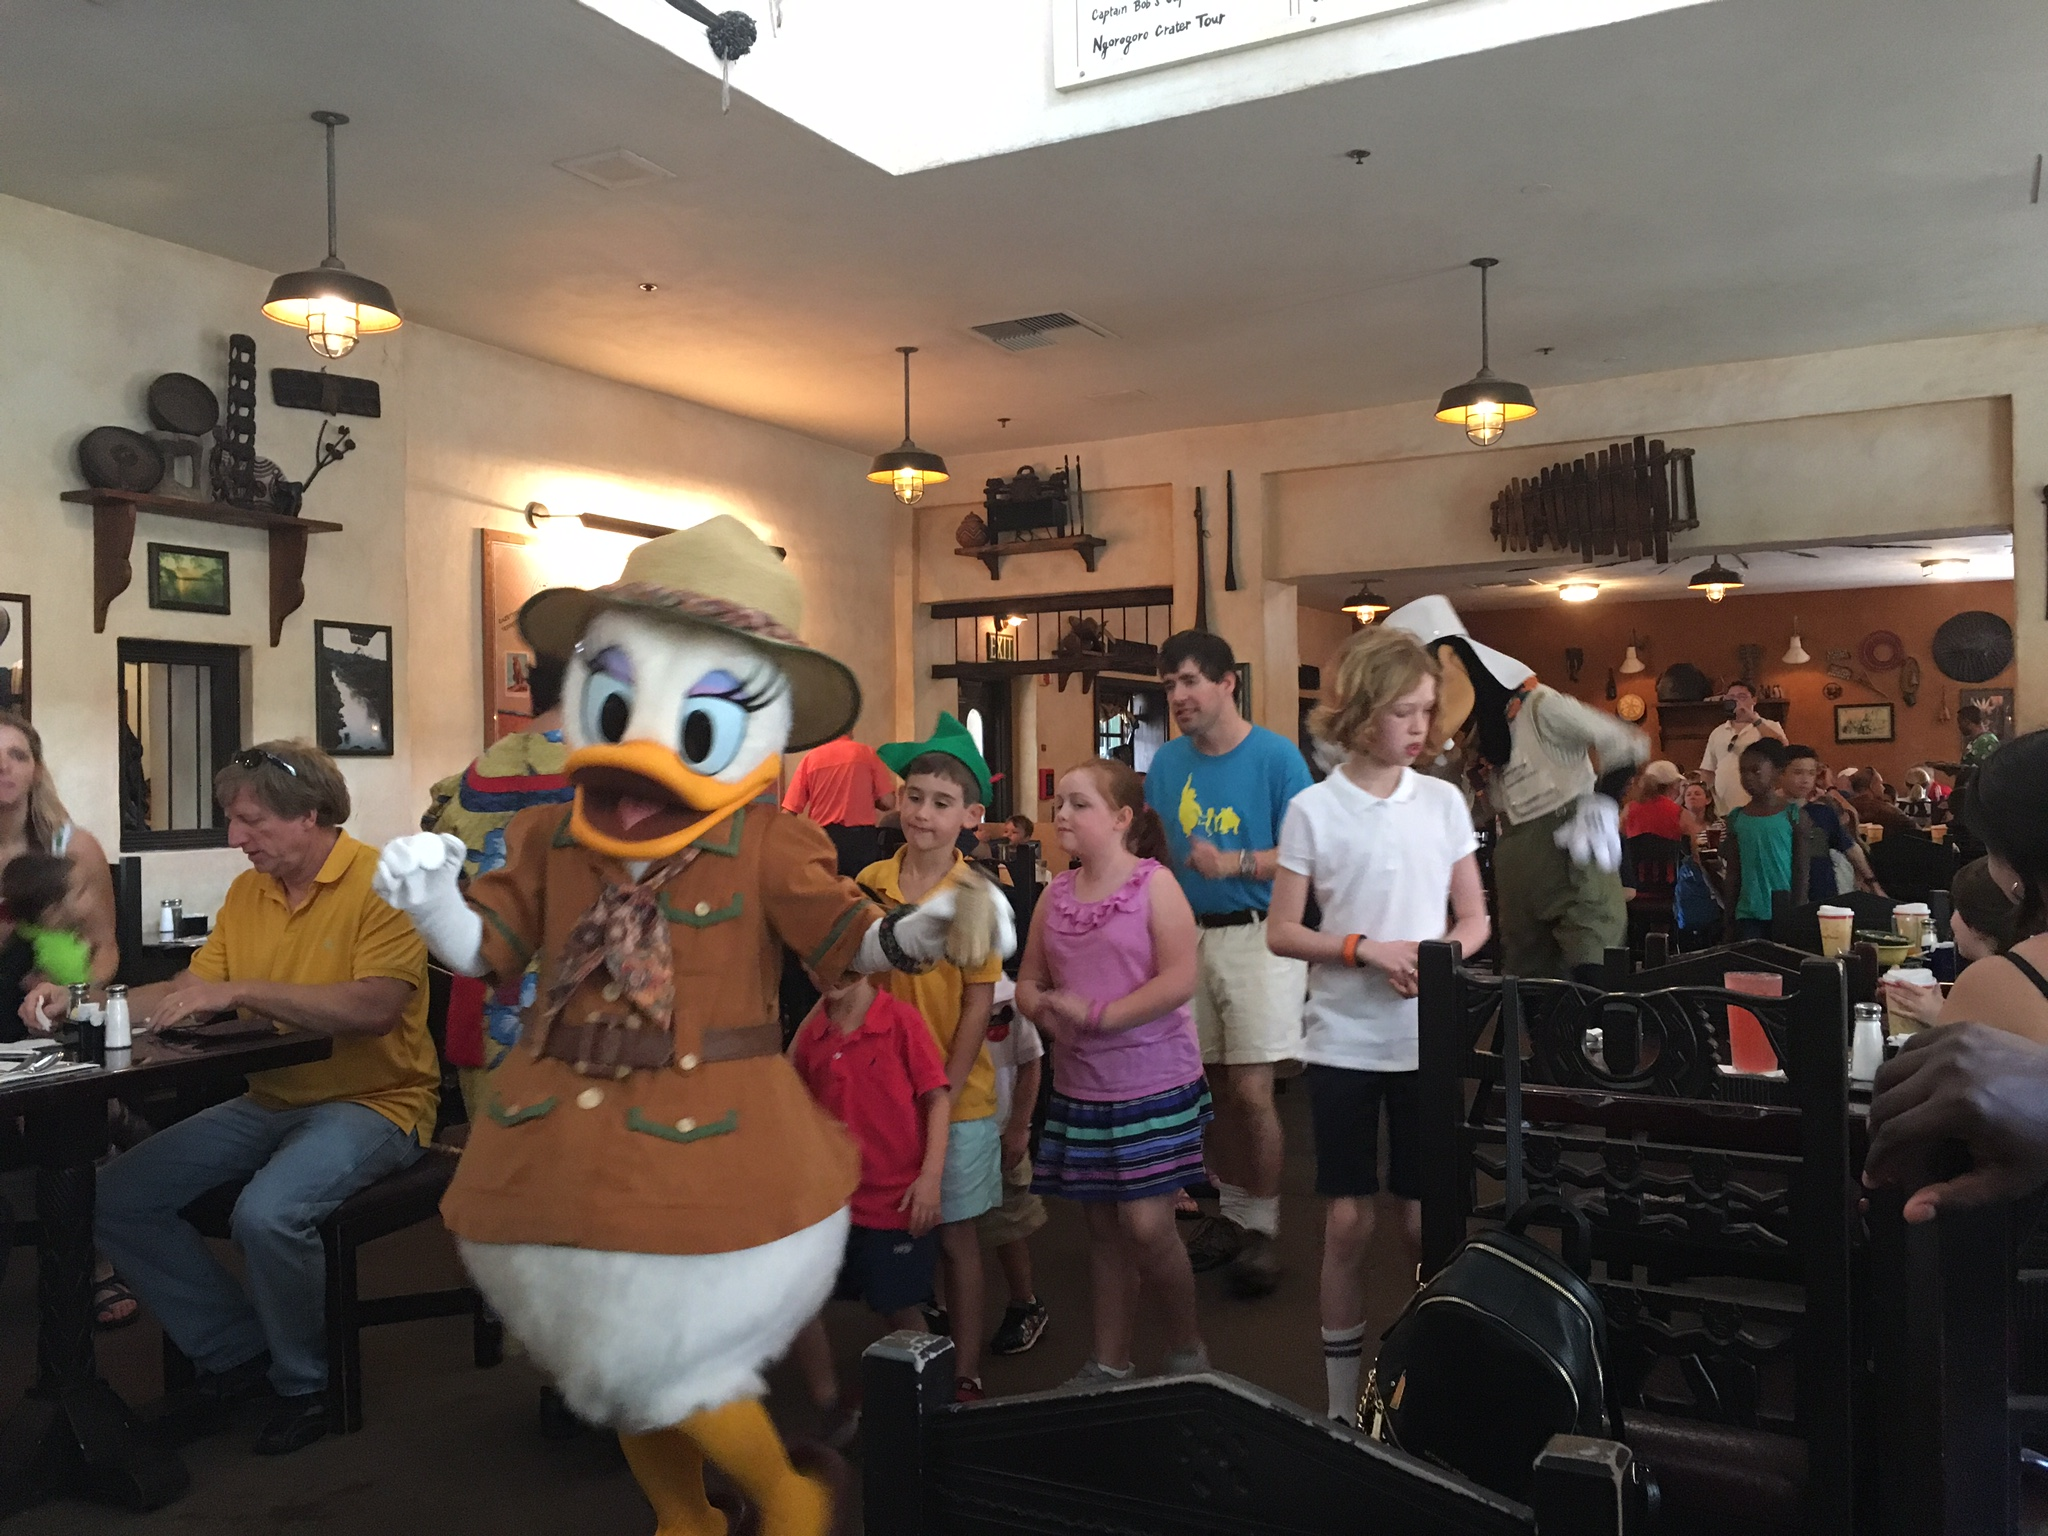 The Character parade happens every 20 minutes or so and all the children in the restaurant are invited to join in...